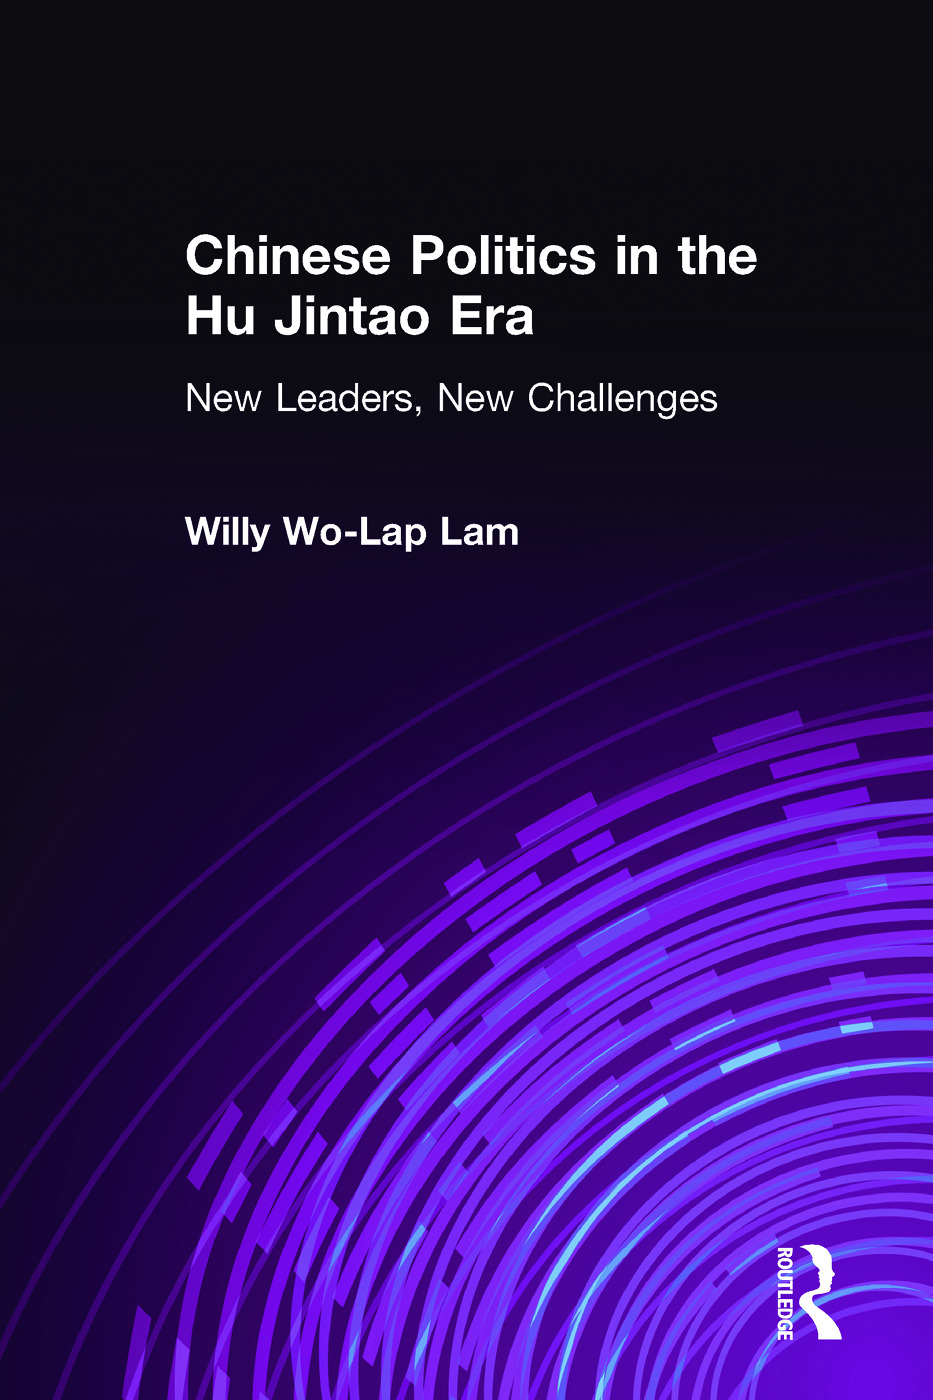 Chinese Politics in the Hu Jintao Era: New Leaders, New Challenges